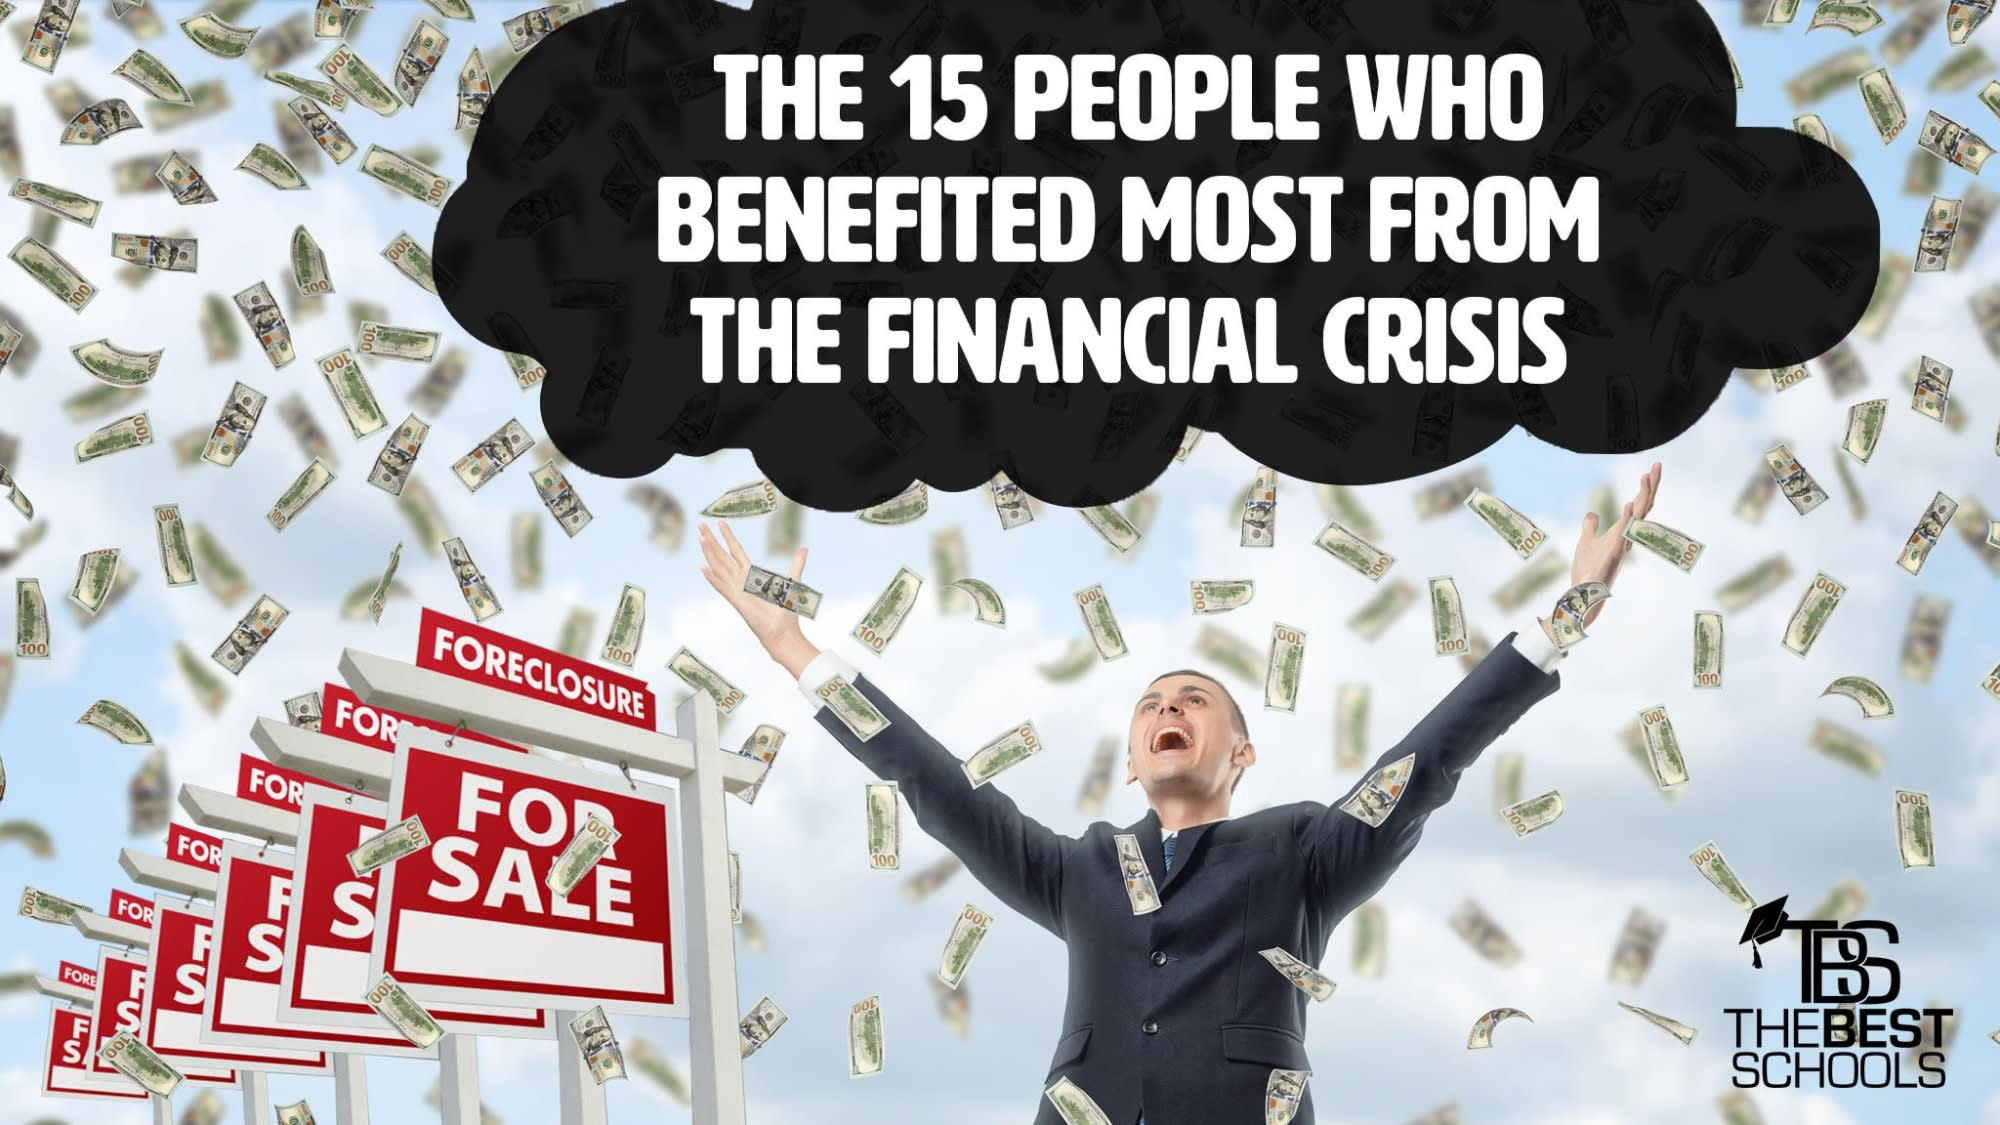 The 15 People Who Benefited Most from the Financial Crisis | The